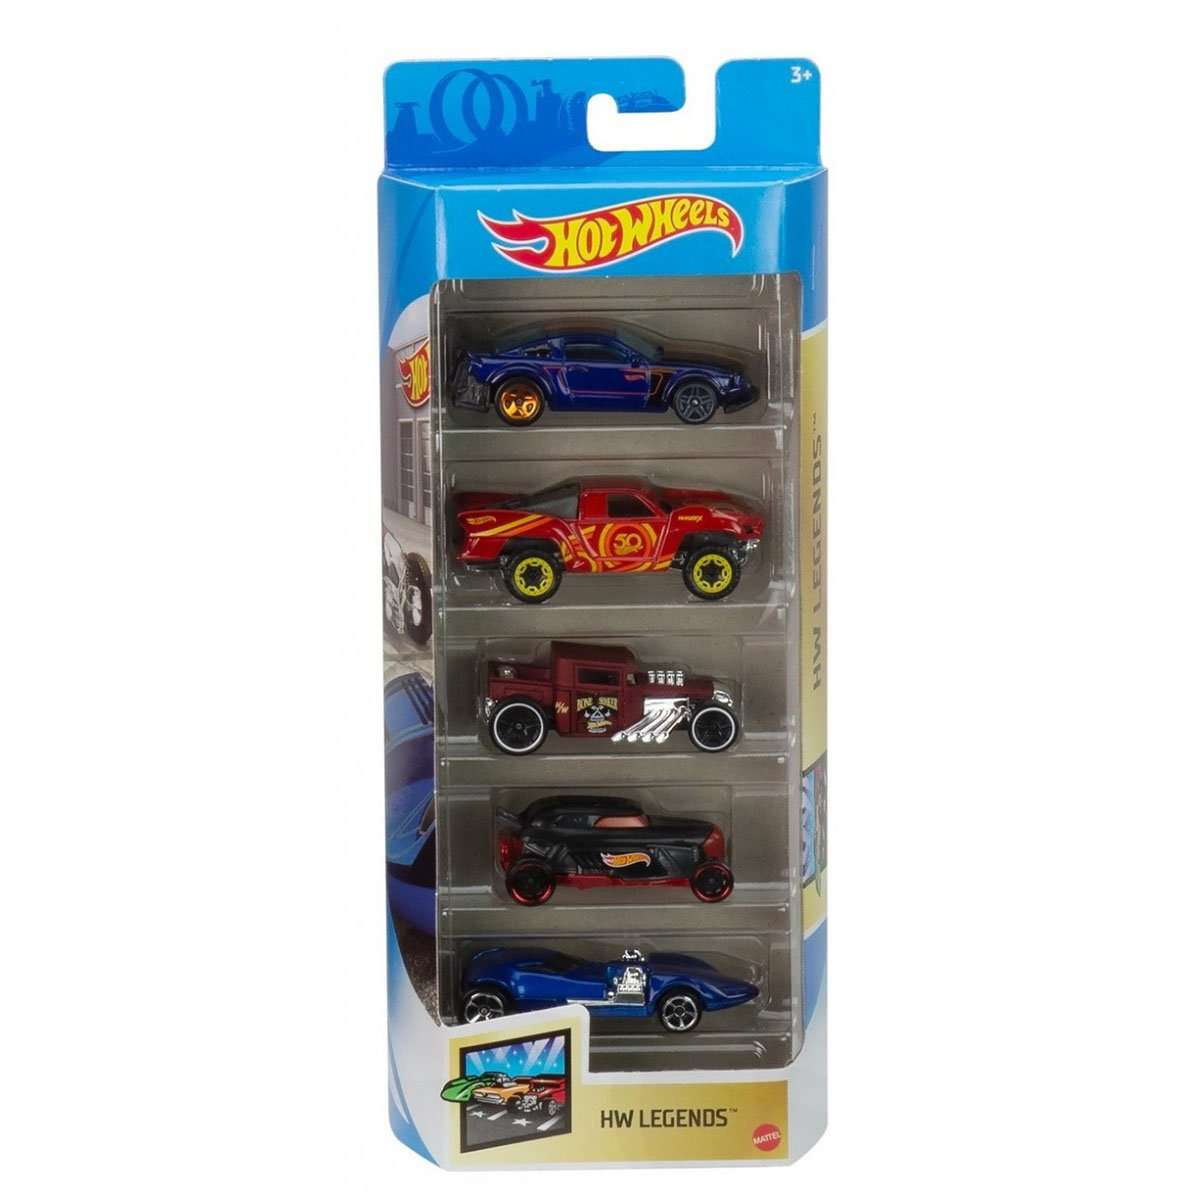 Set masinute Hot Wheels, Hw Legends, GTN38, 1:64 (5 modele)